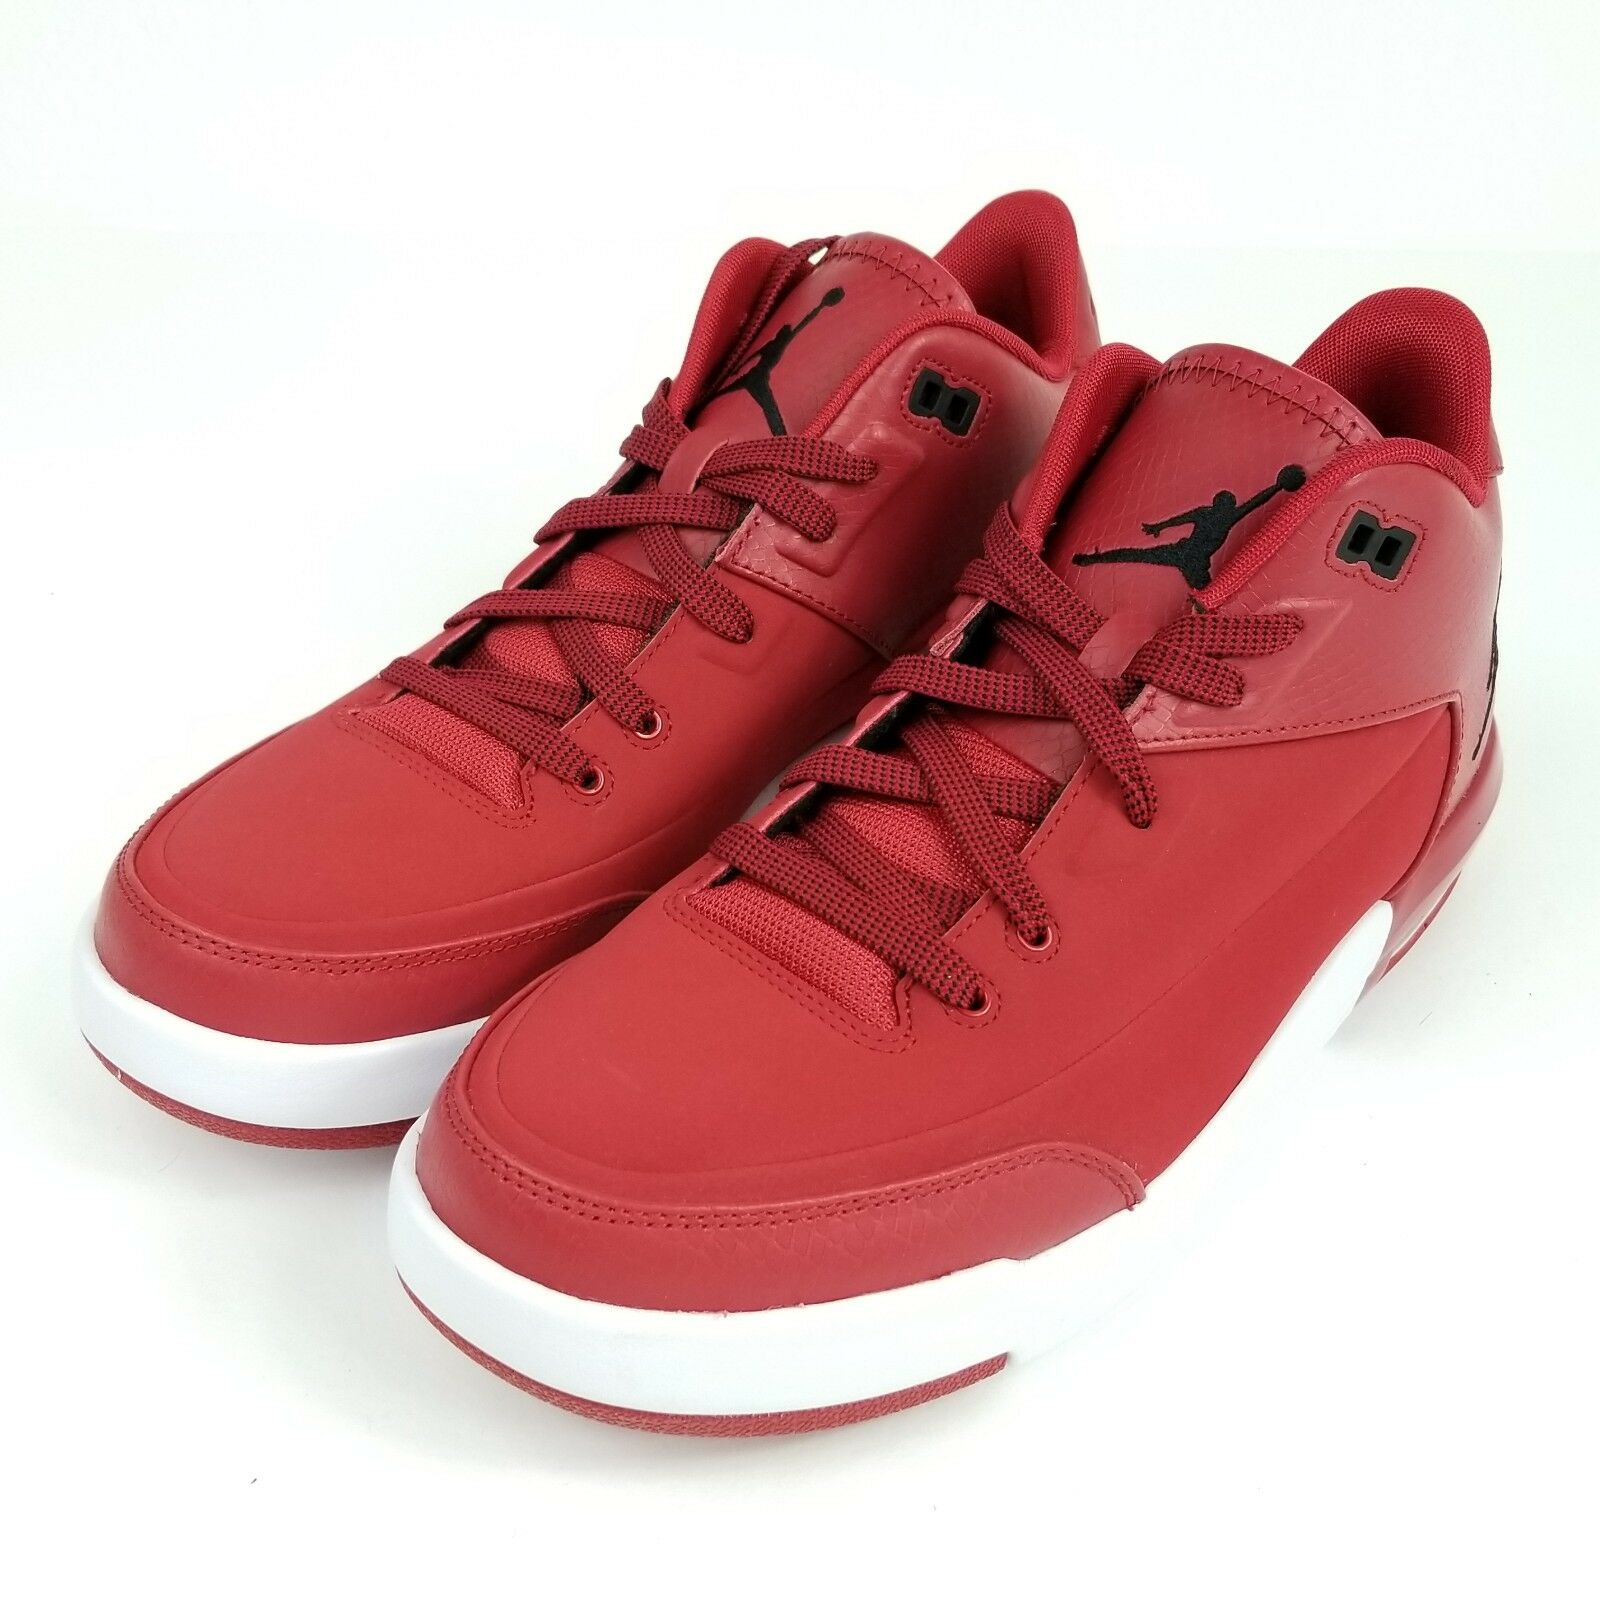 NIKE JORDAN FLIGHT ORIGIN 3 Mens Sz 9.5 Shoes GYM RED BLACK 820245 601 Seasonal clearance sale